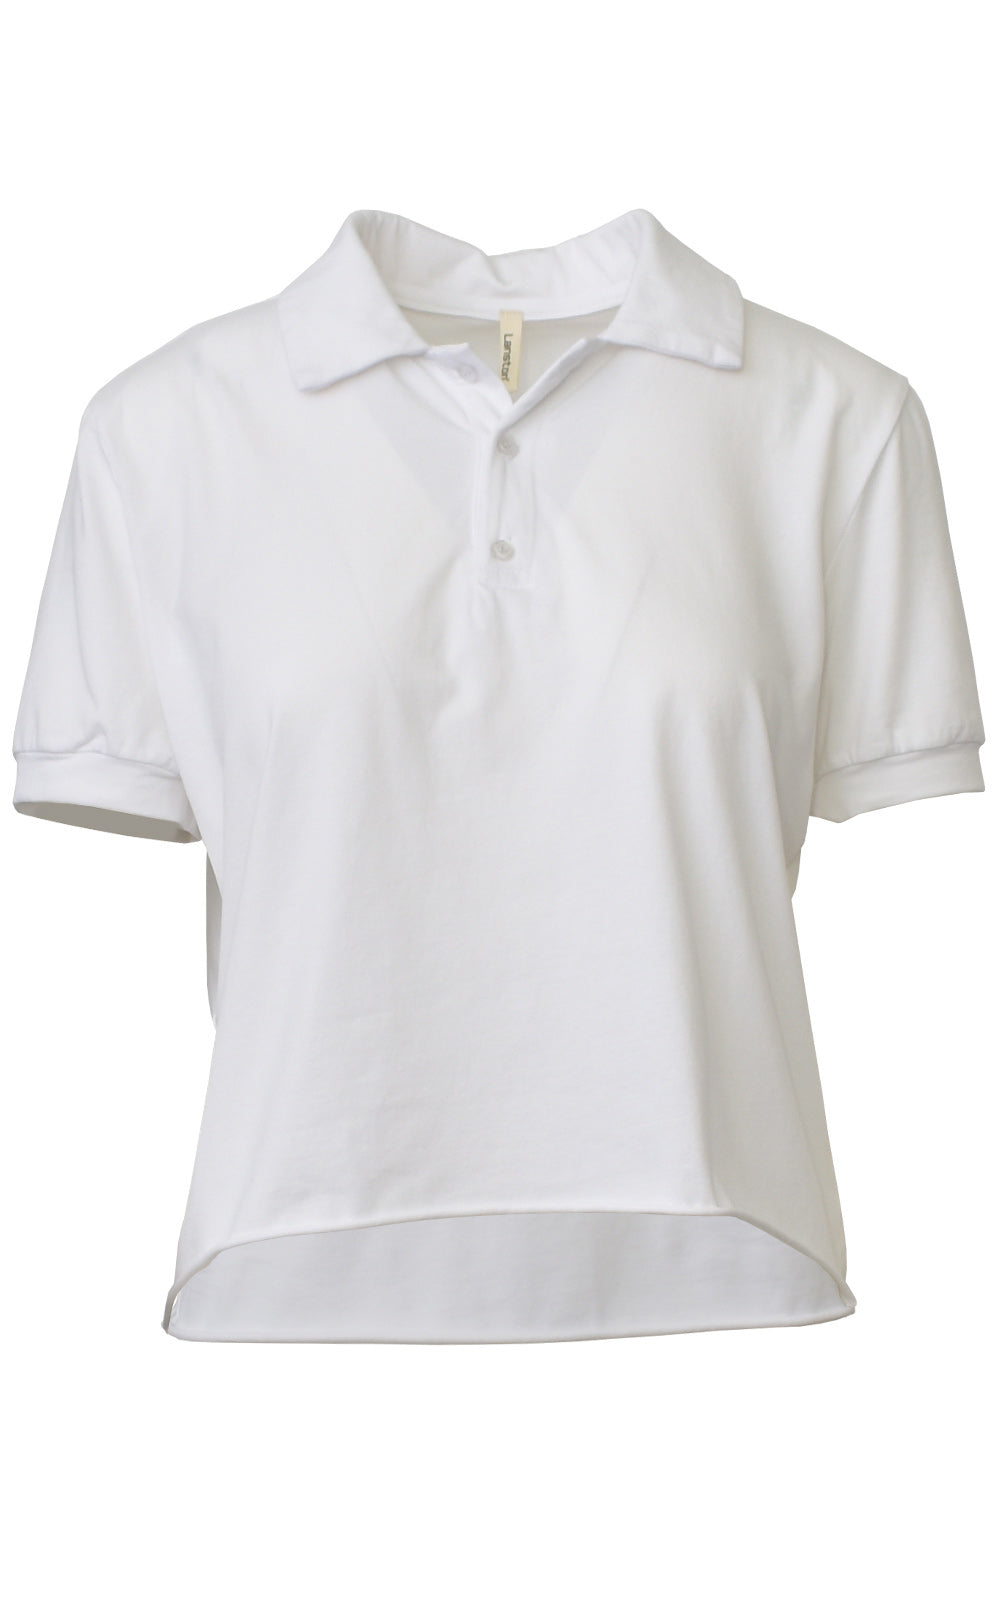 Lanston White Cutoff Crop Top Polo Shirt Front